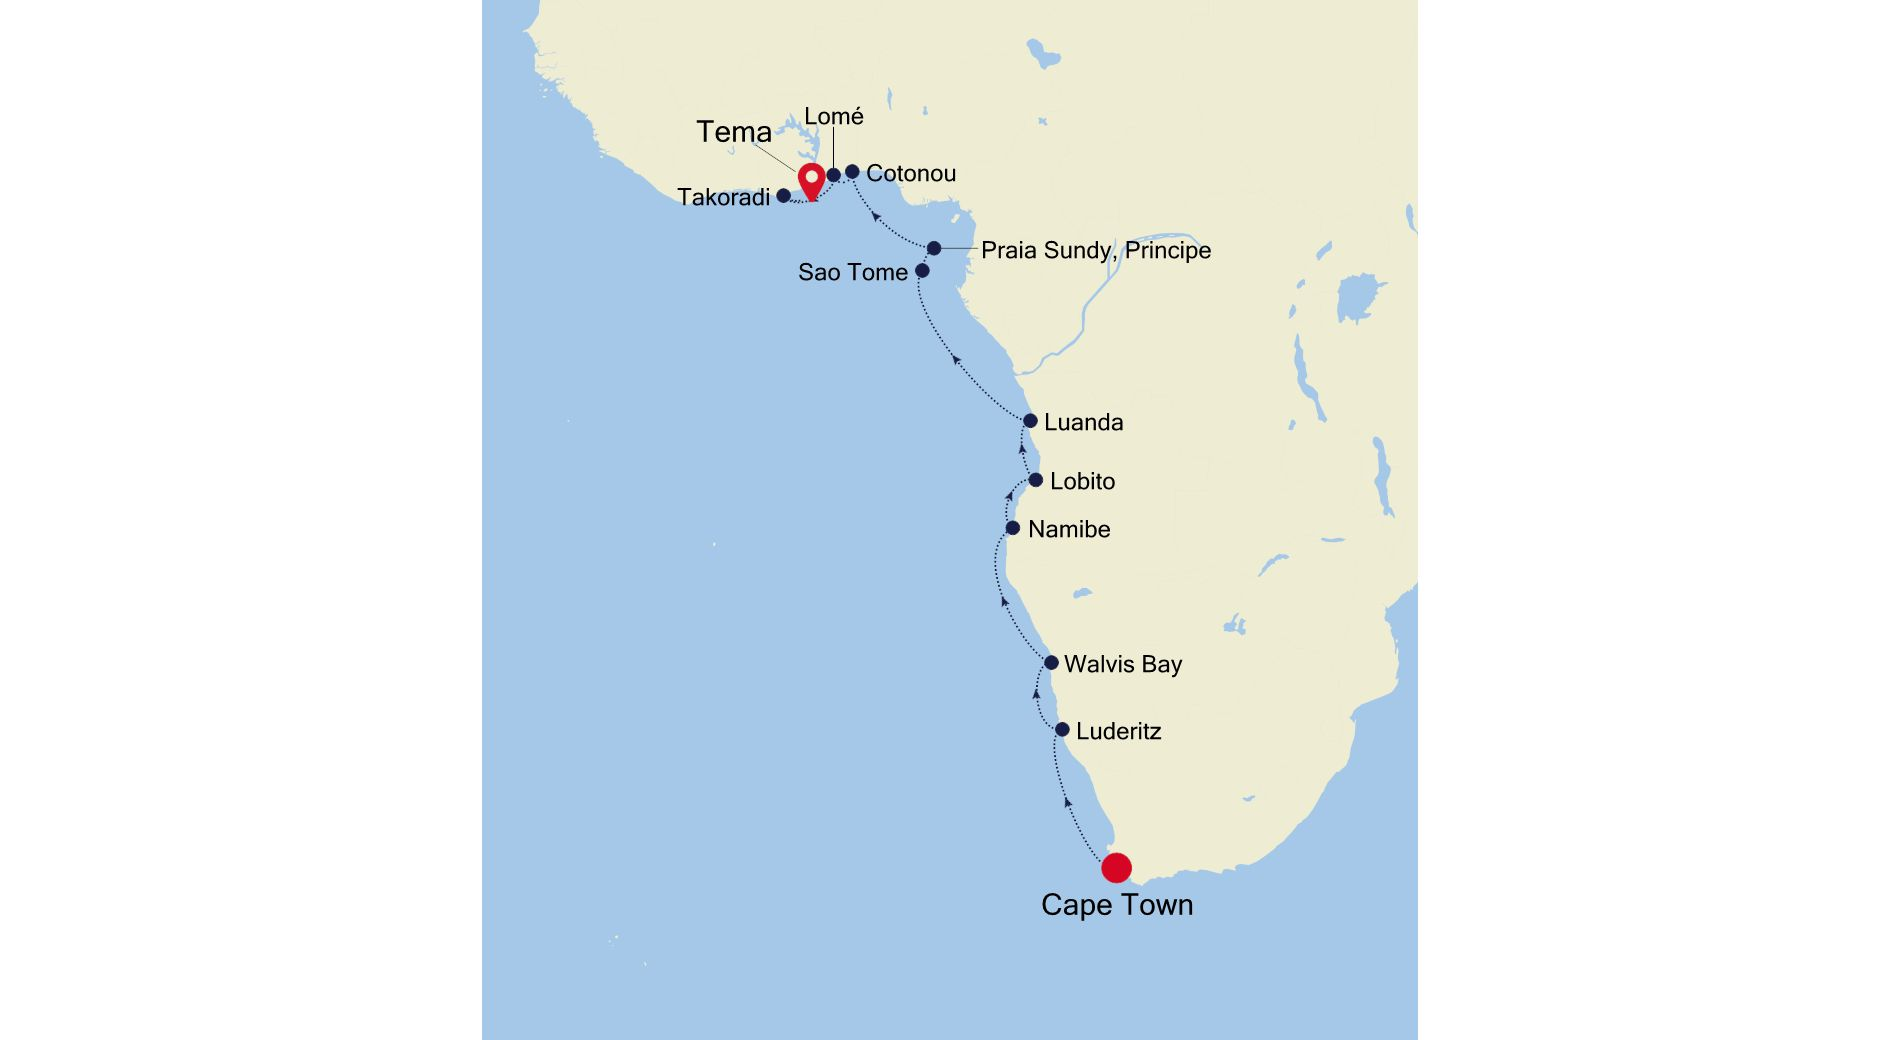 WI210330018 - Cape Town to Accra